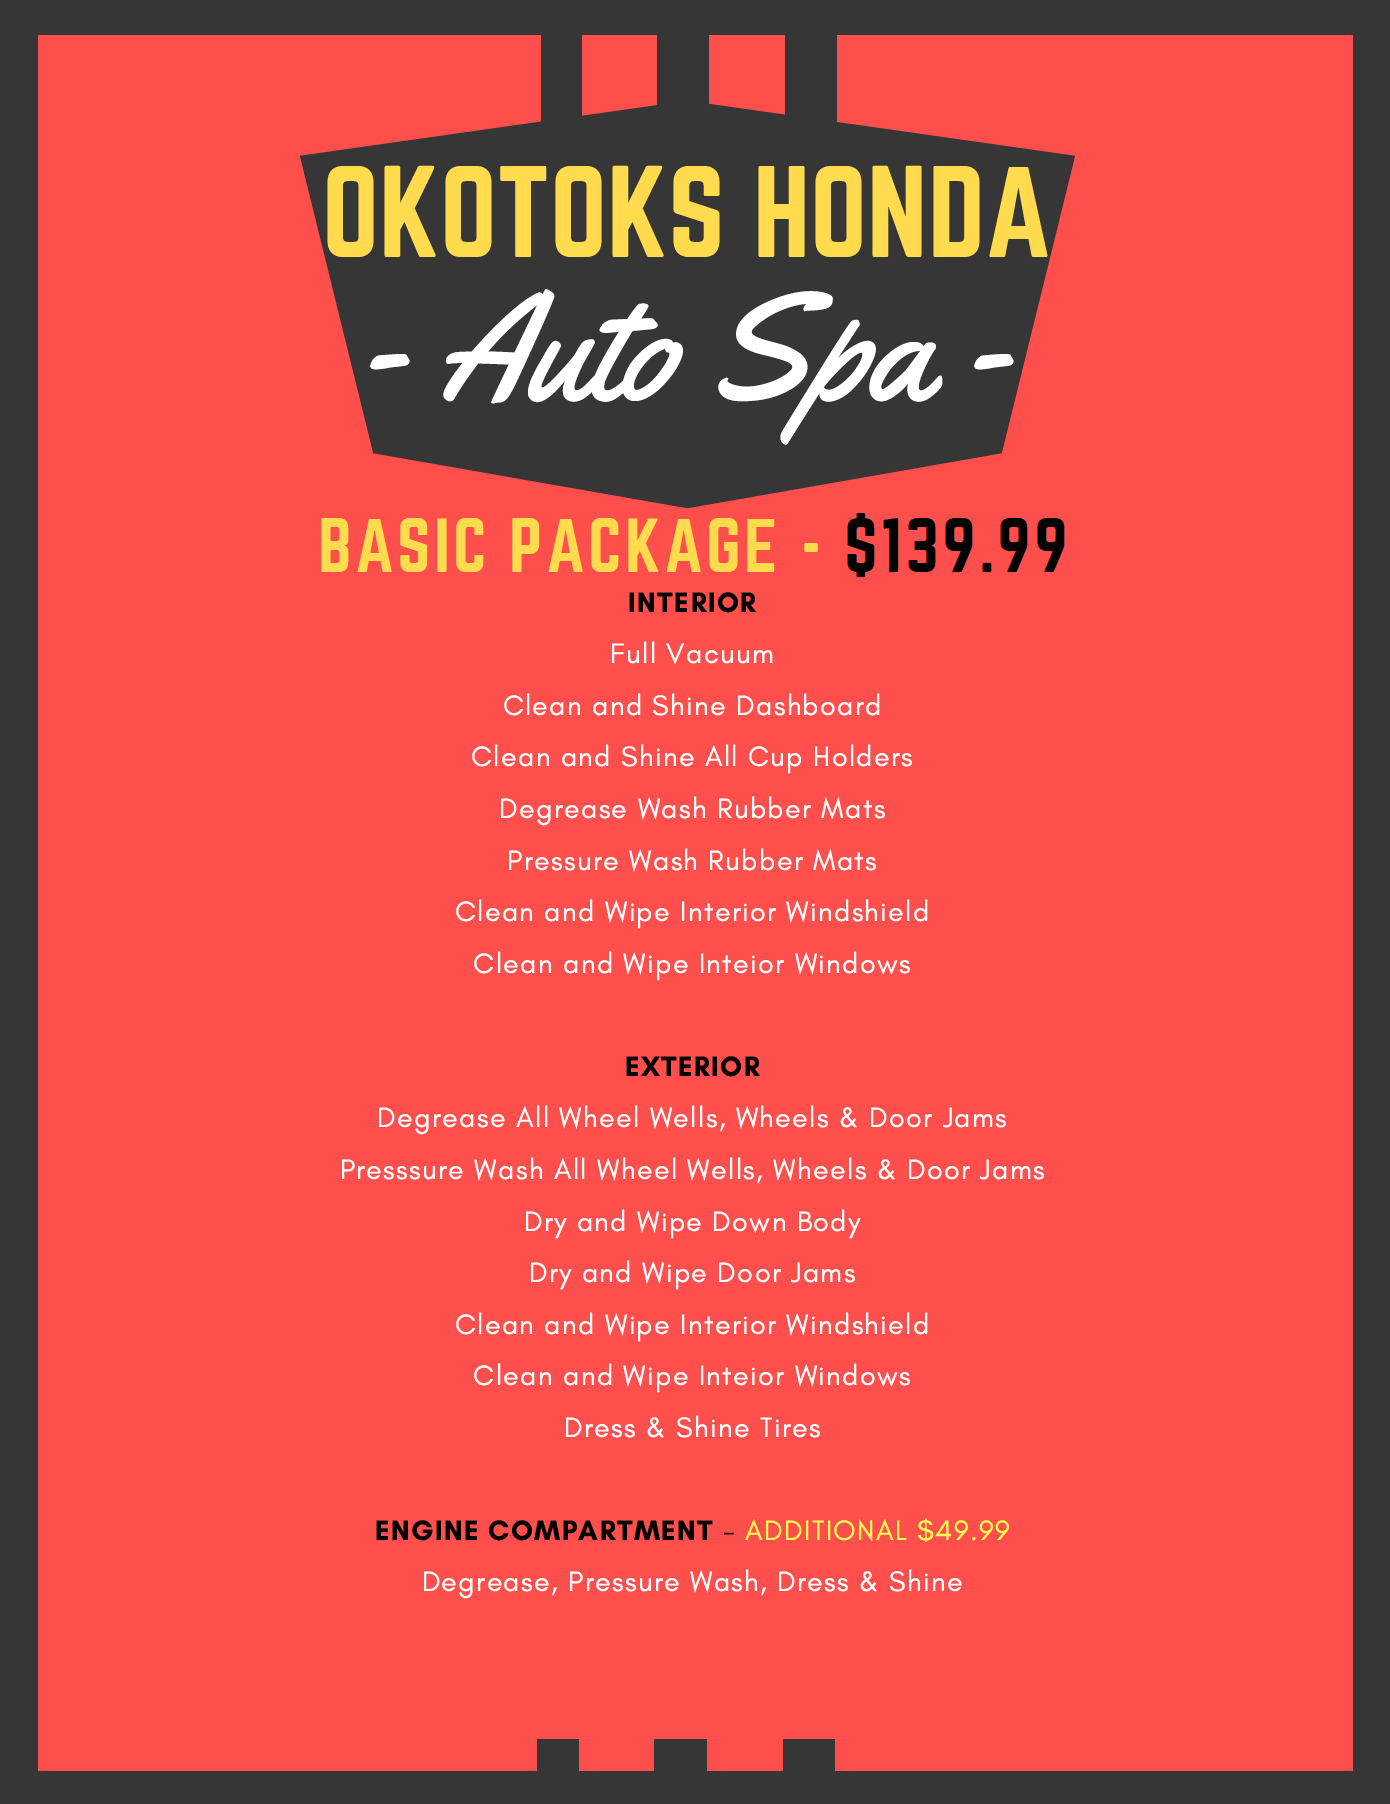 Okotoks Honda Auto Spa Basic Package in Okotoks, South Calgary